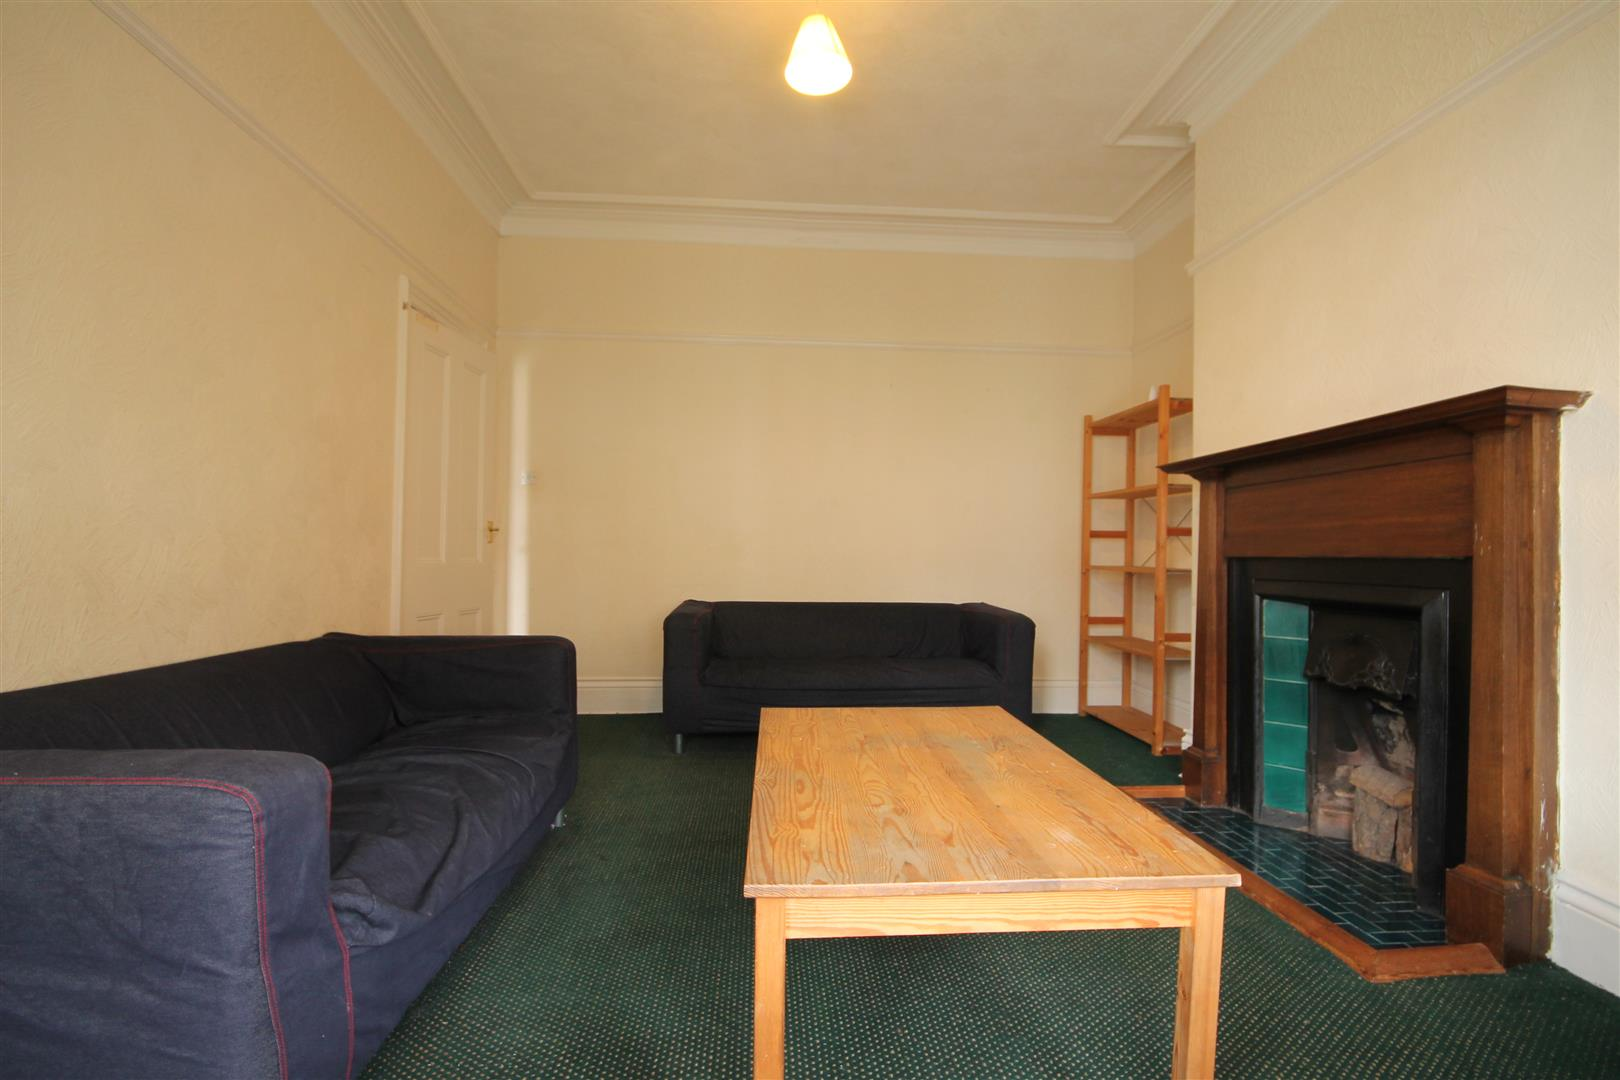 Grosvenor Gardens Newcastle Upon Tyne, 4 Bedrooms  House Share ,To Let